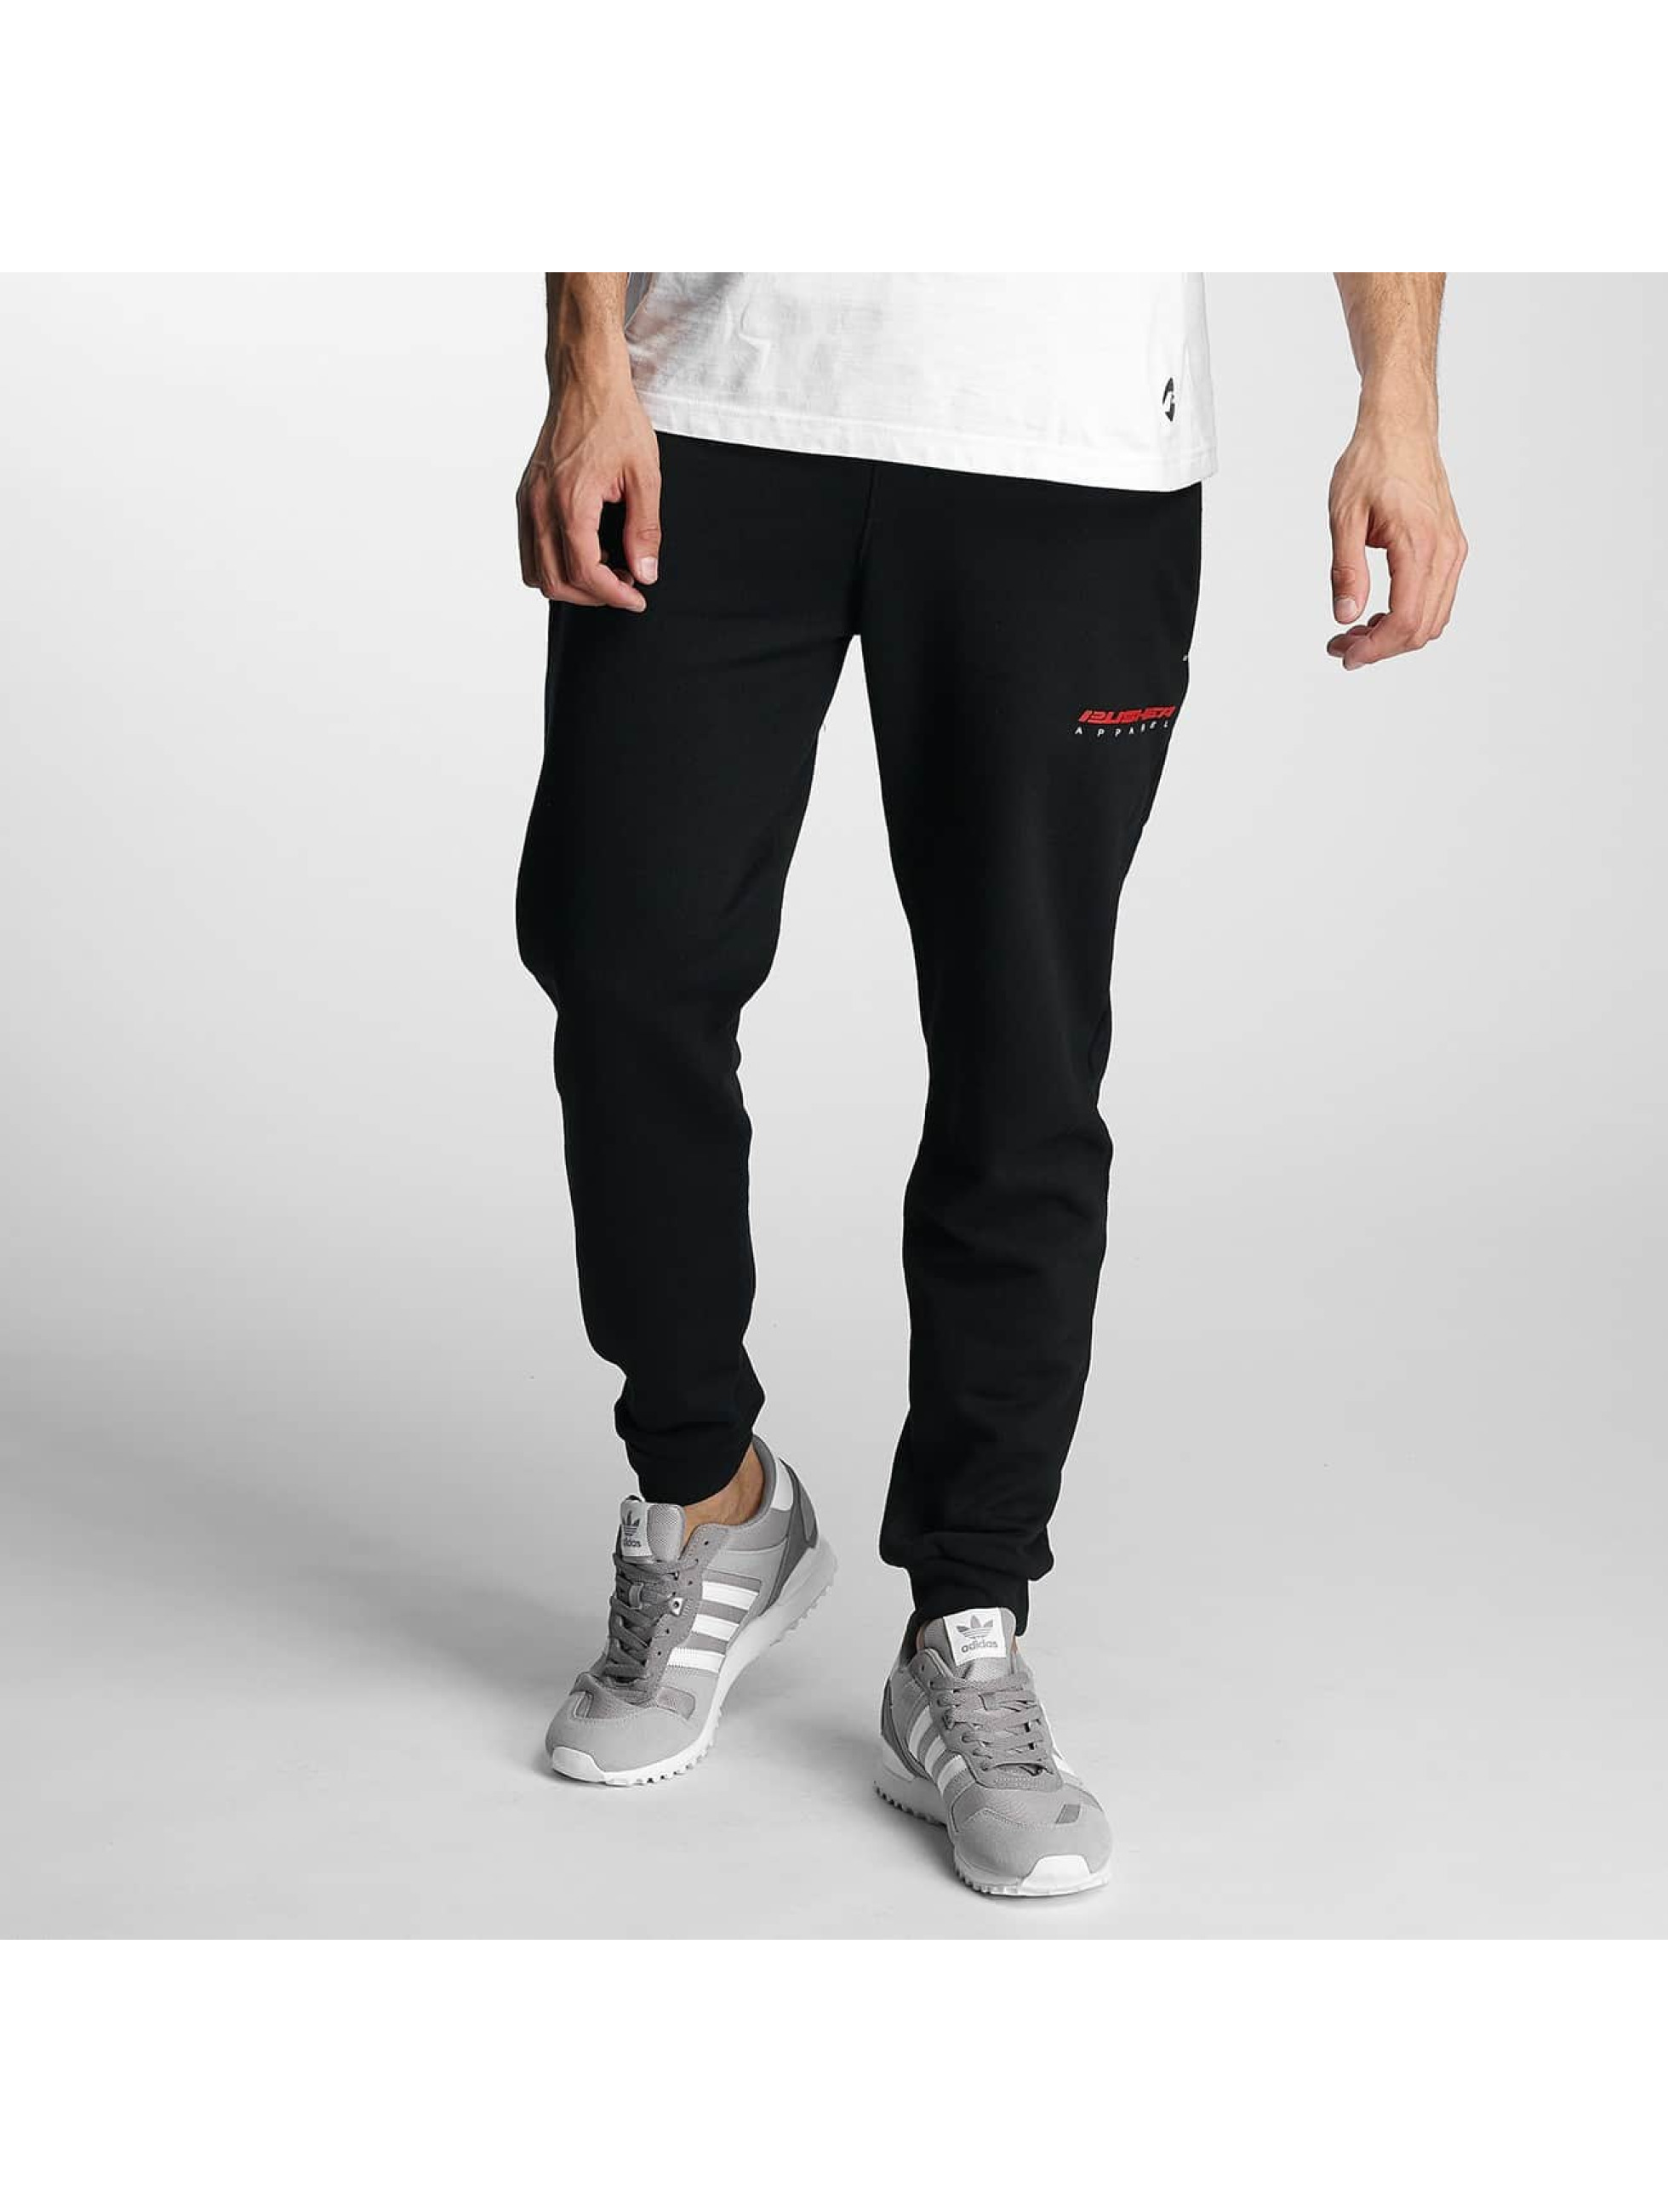 Pusher Apparel Pantalone ginnico 215 Jacking nero